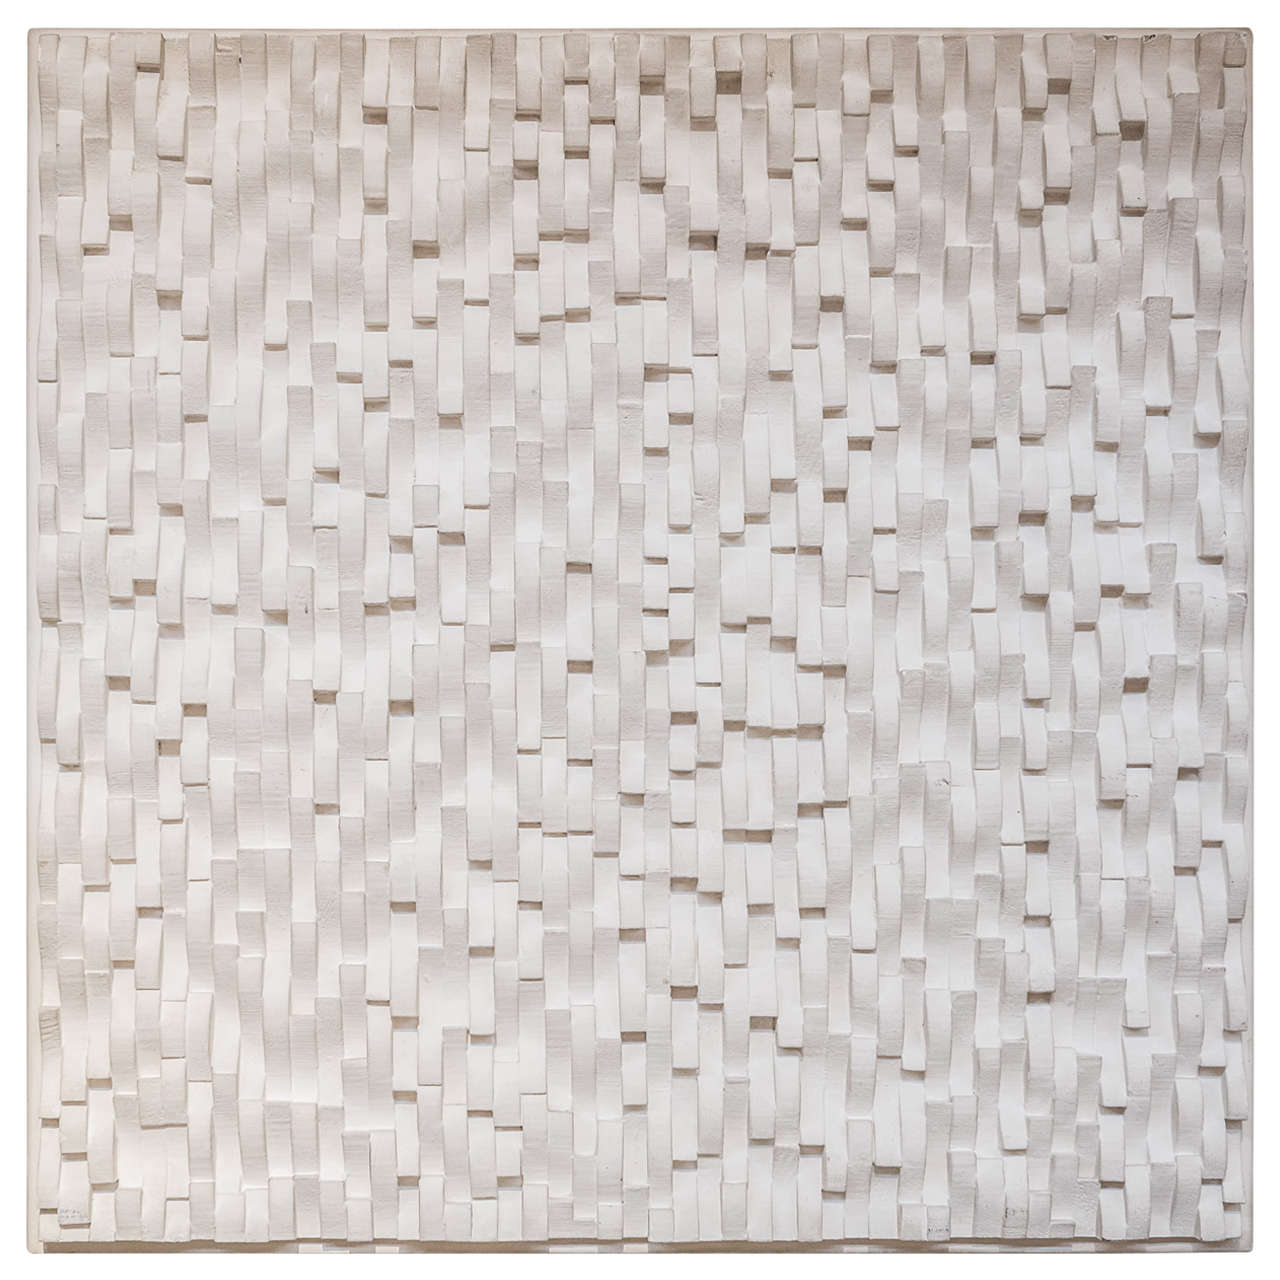 John TOWNSEND Bas Relief In Wood Construction Painted In White At